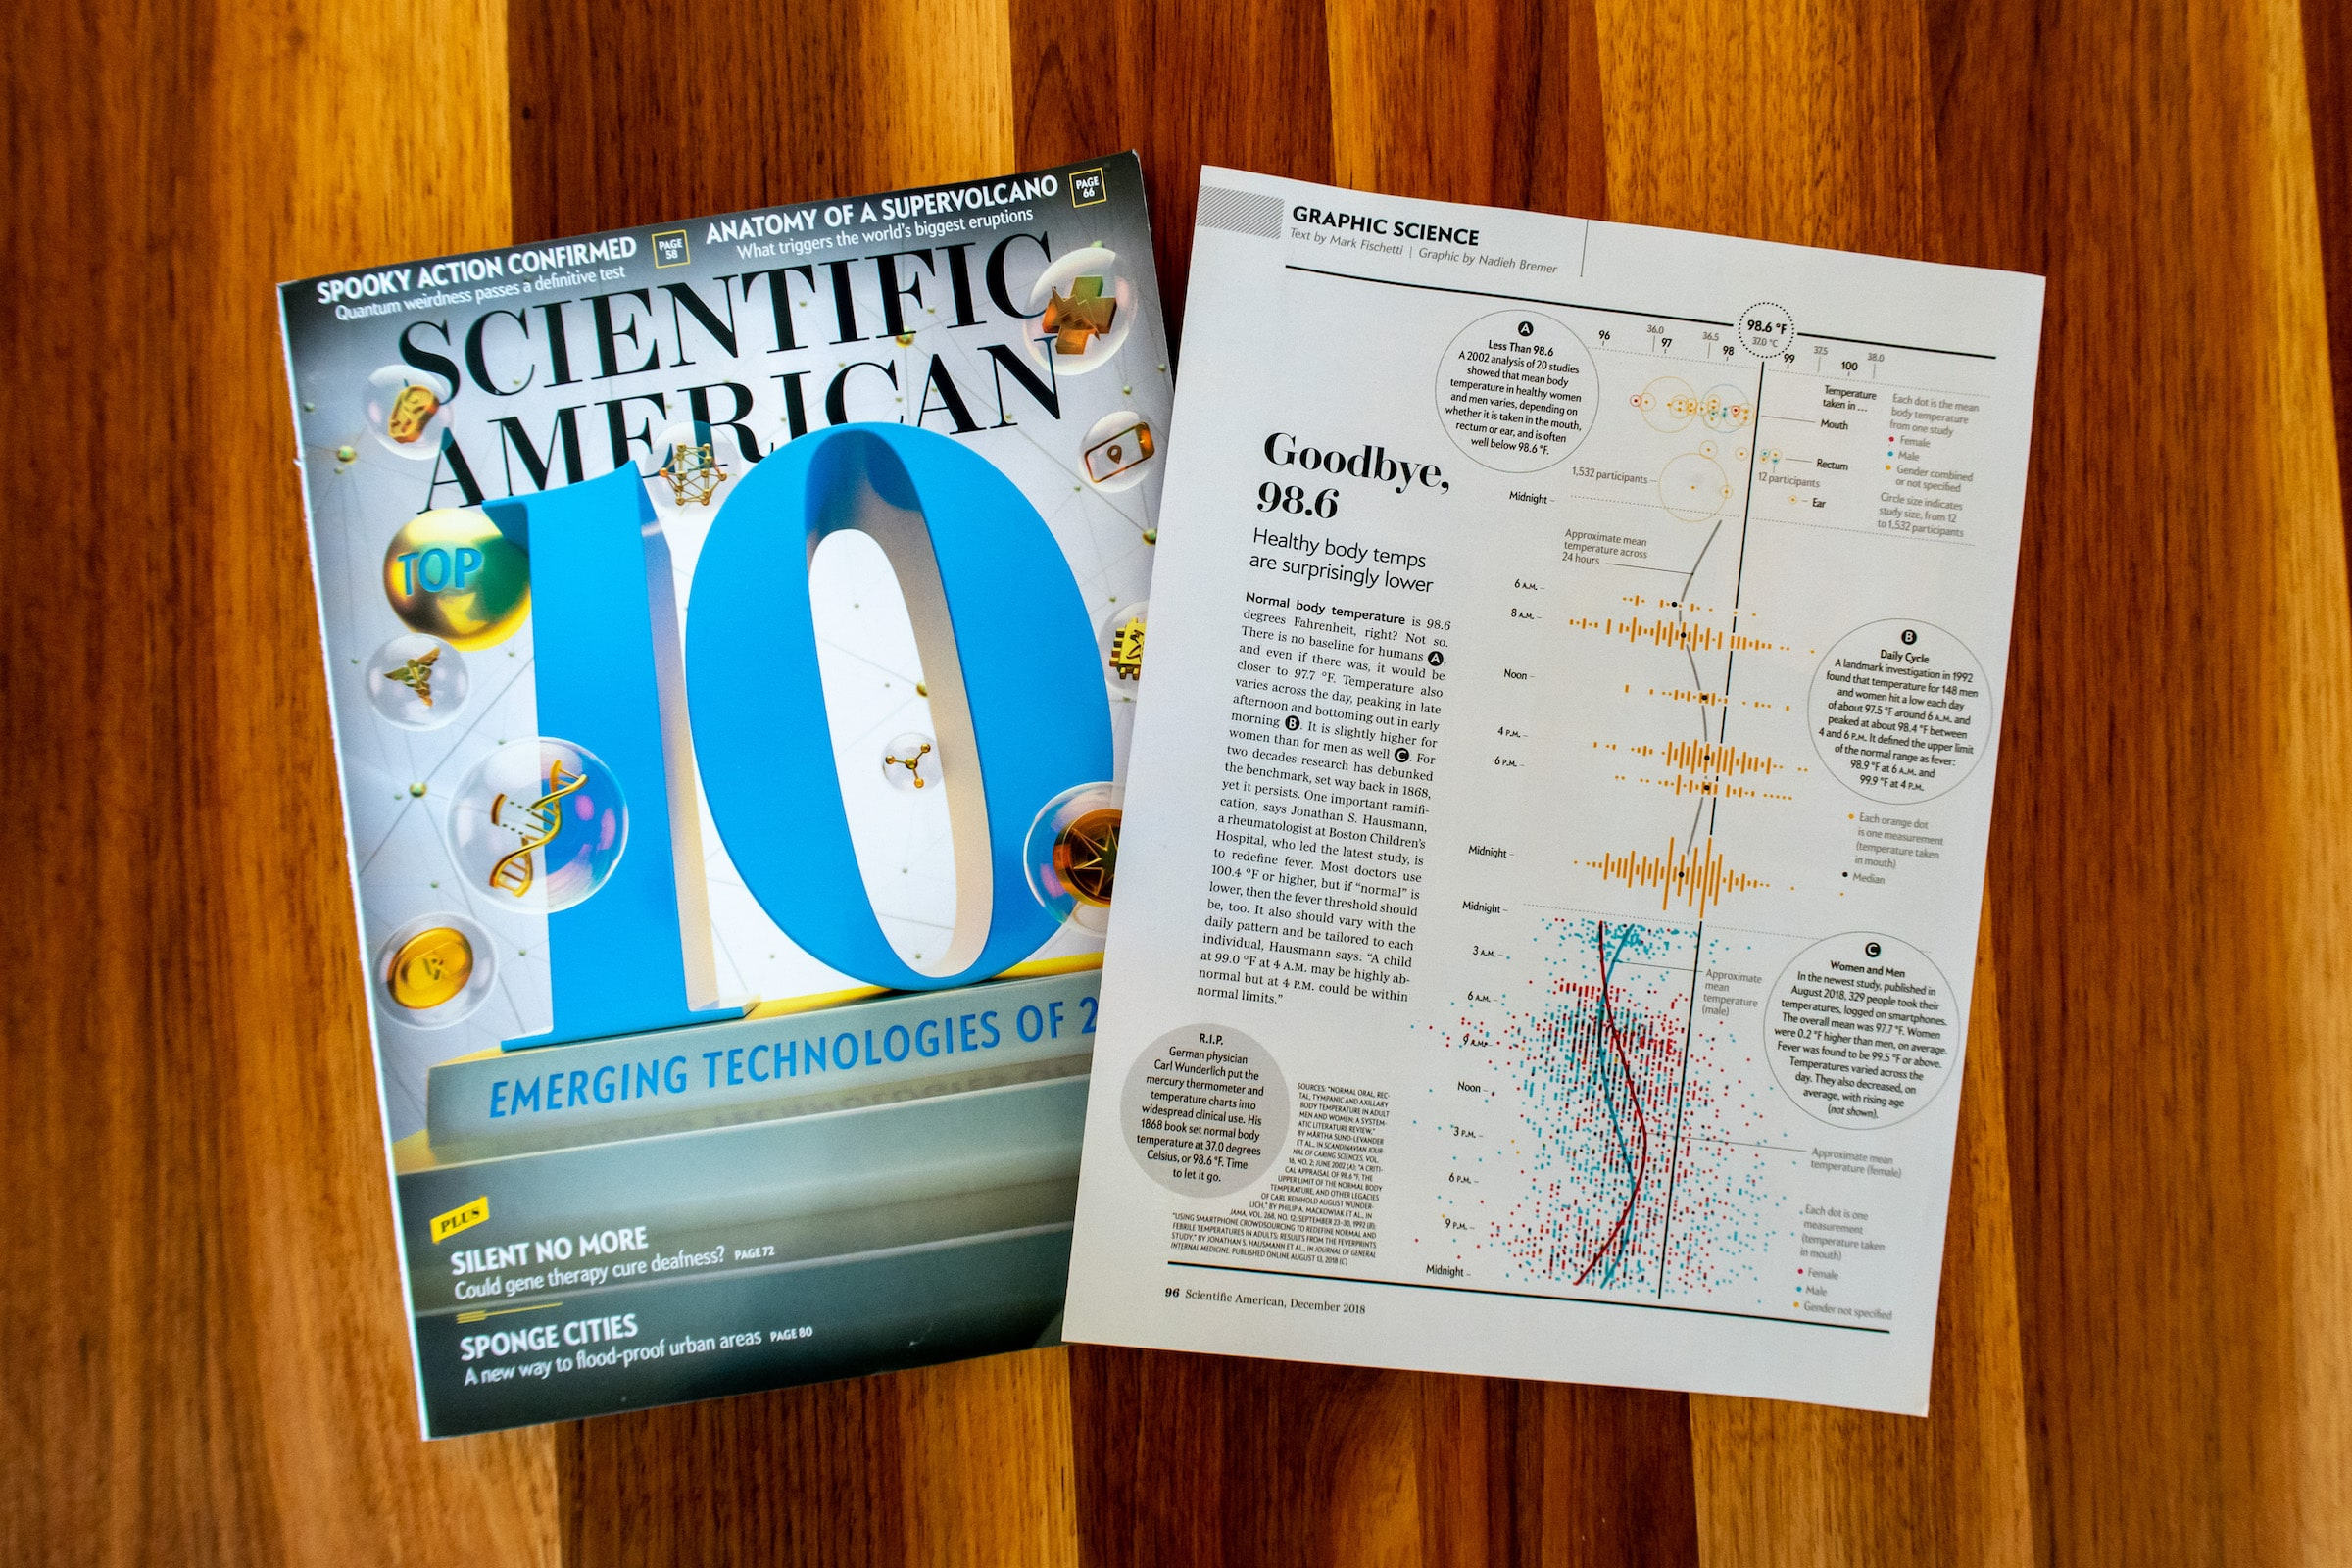 The Graphic Science page together with the front of the magazine